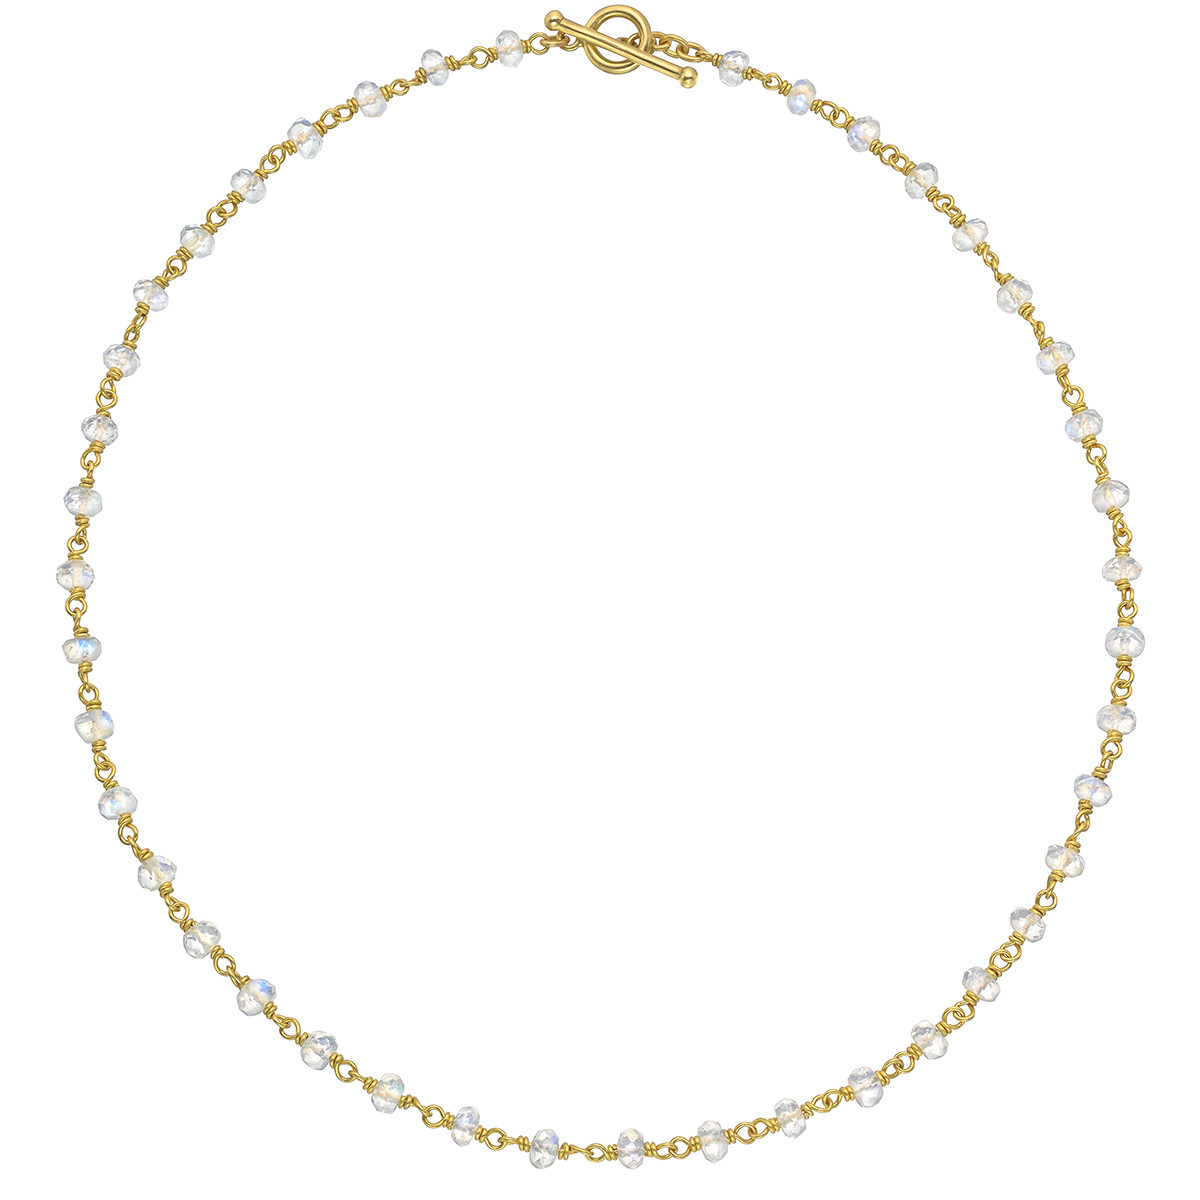 20k Yellow Gold & Moonstone Chain Necklace